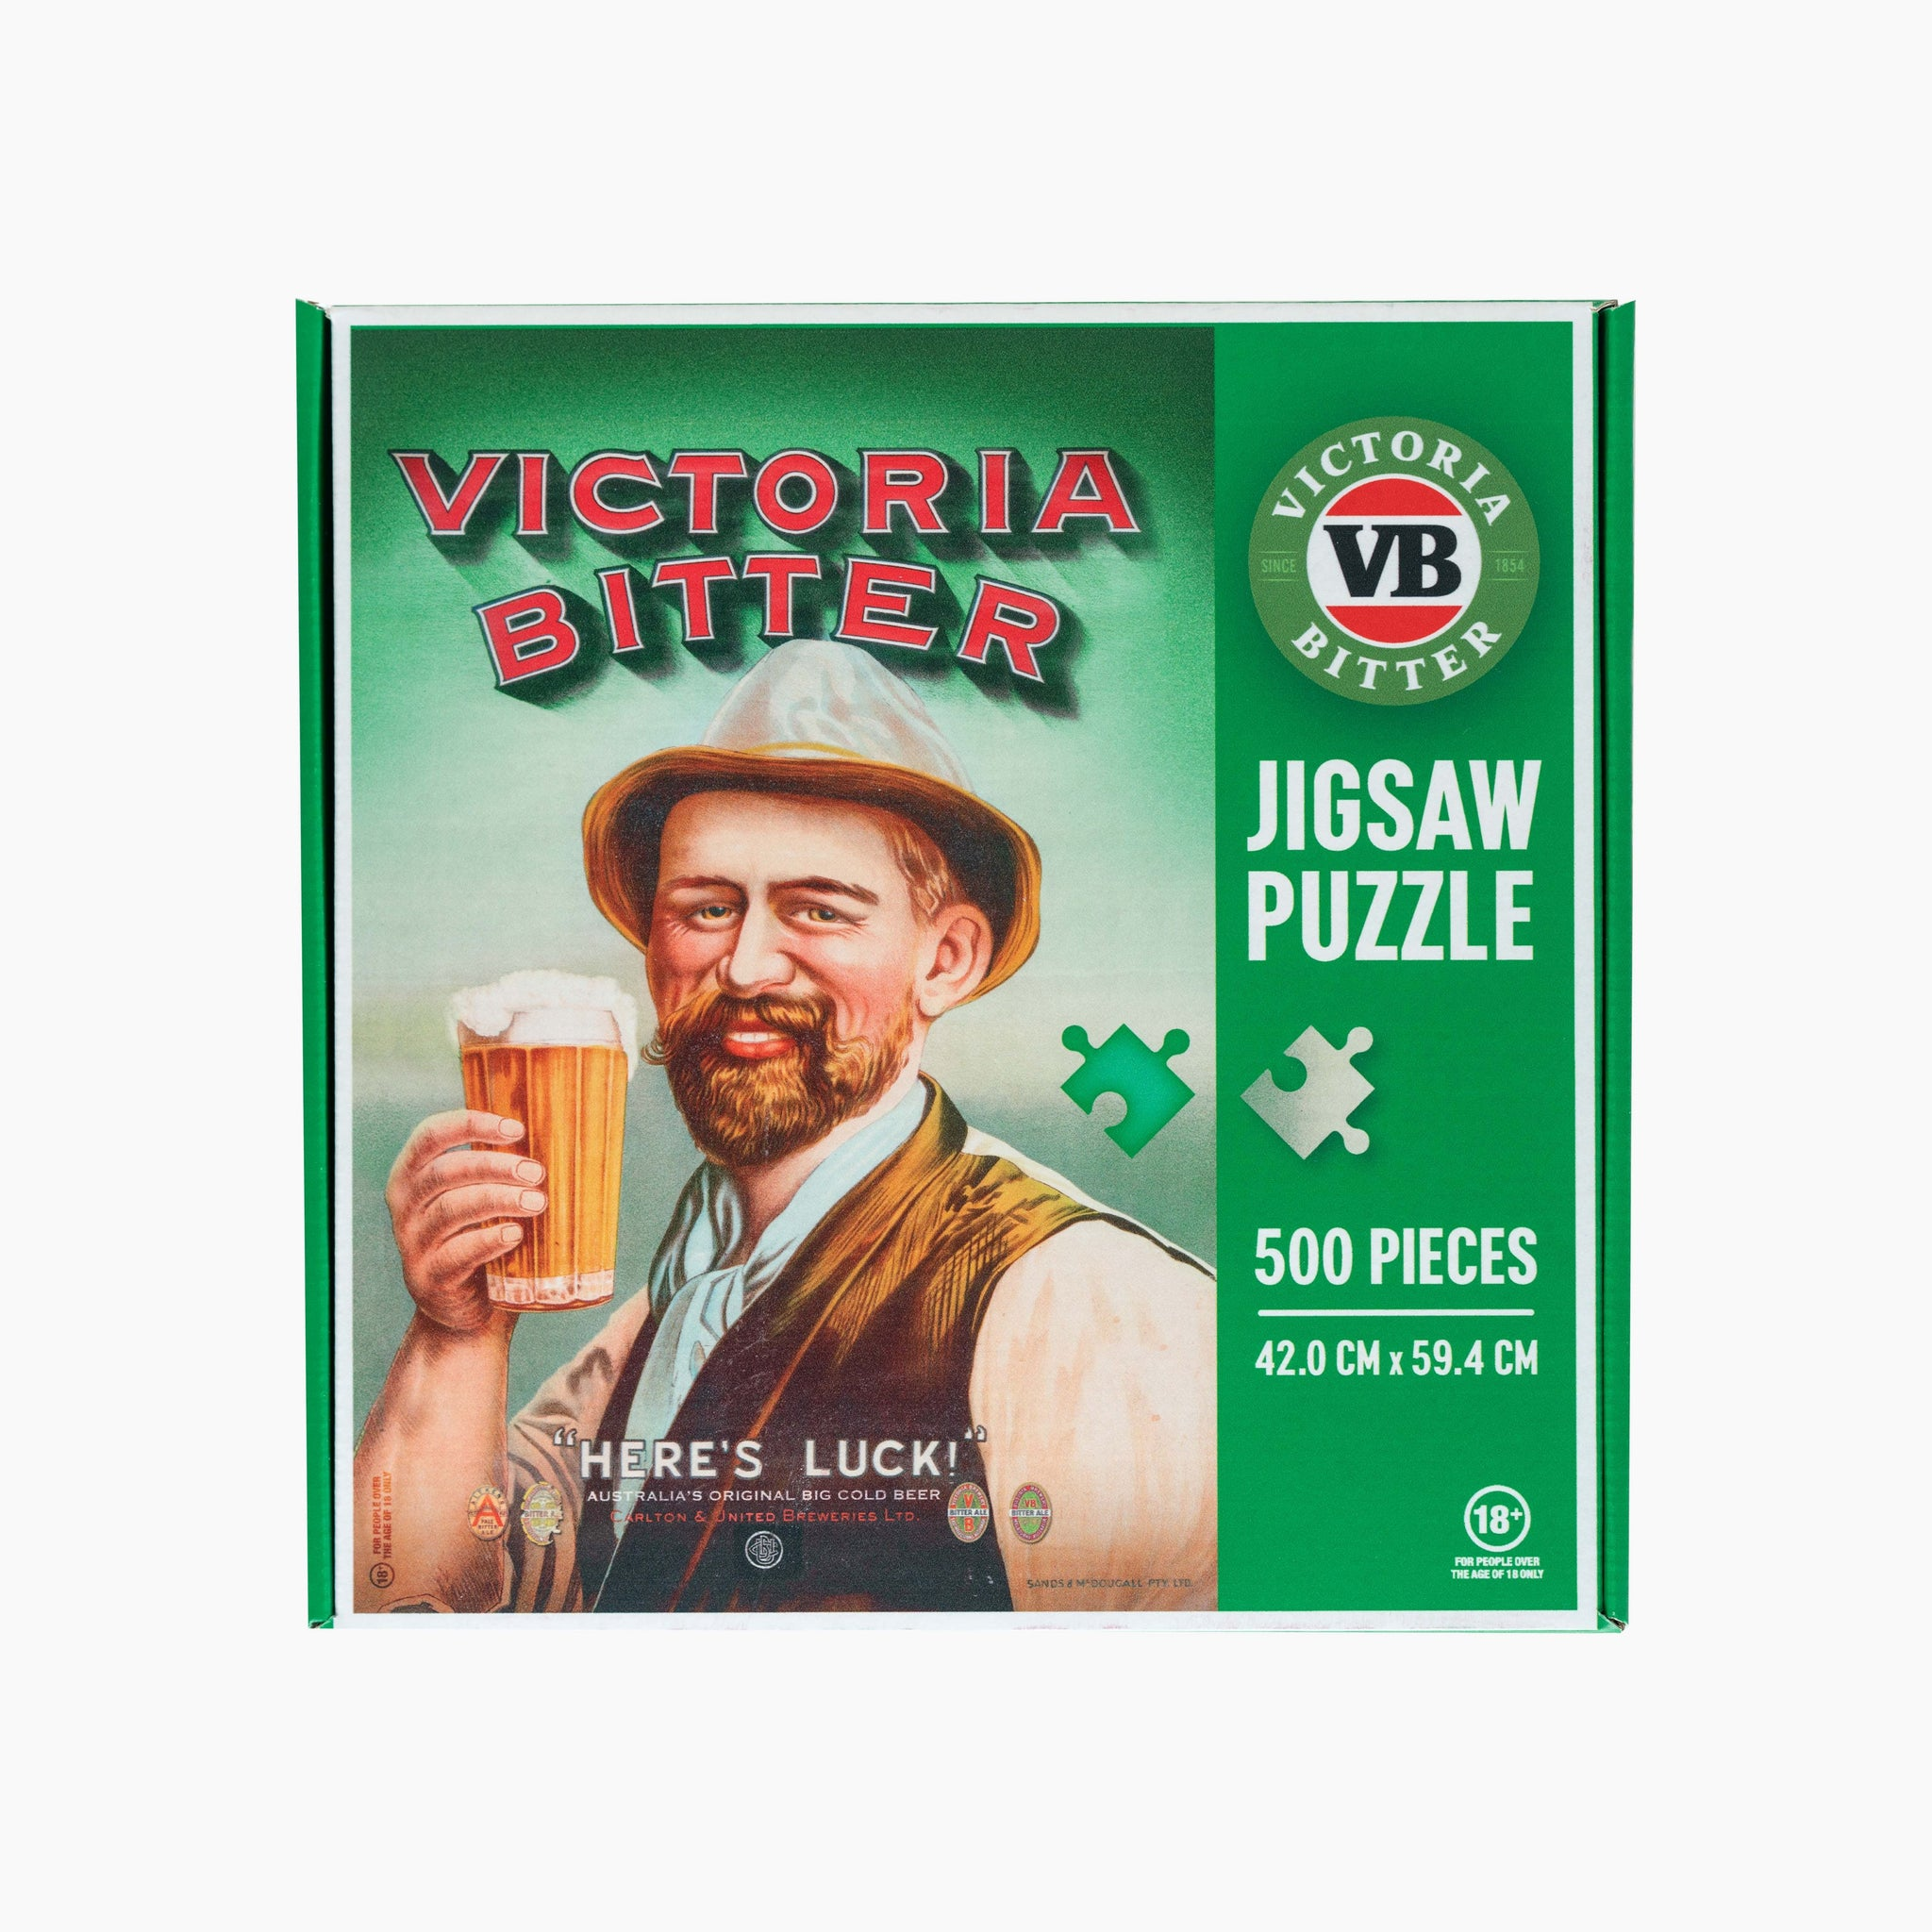 Here's Luck Jigsaw Puzzle